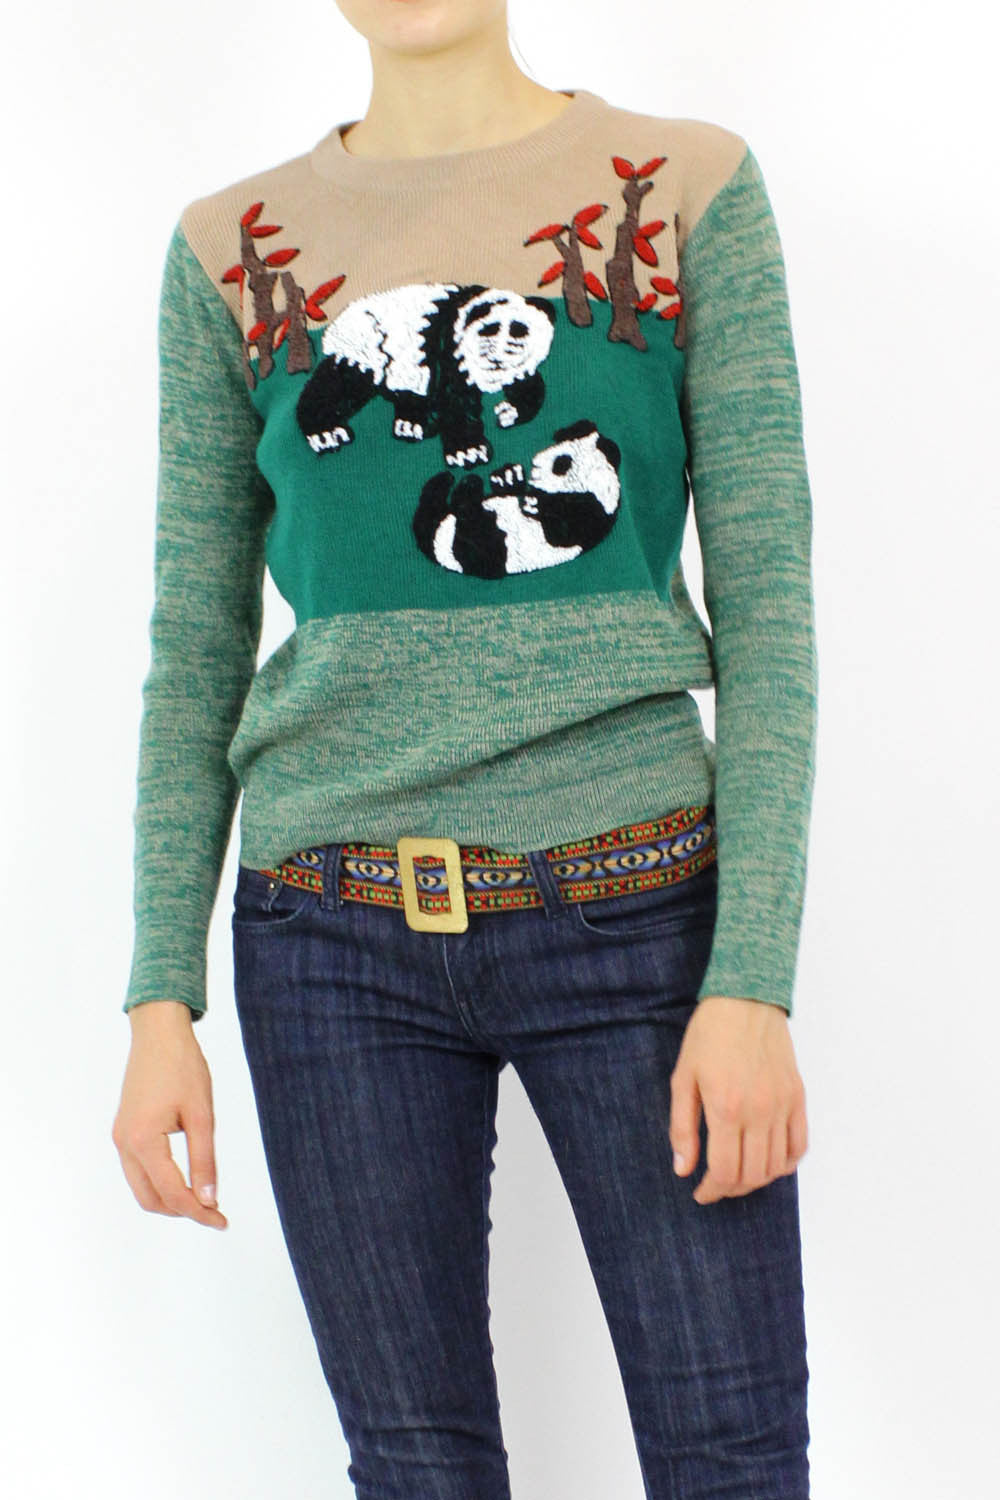 vintage panda kawaii sweater